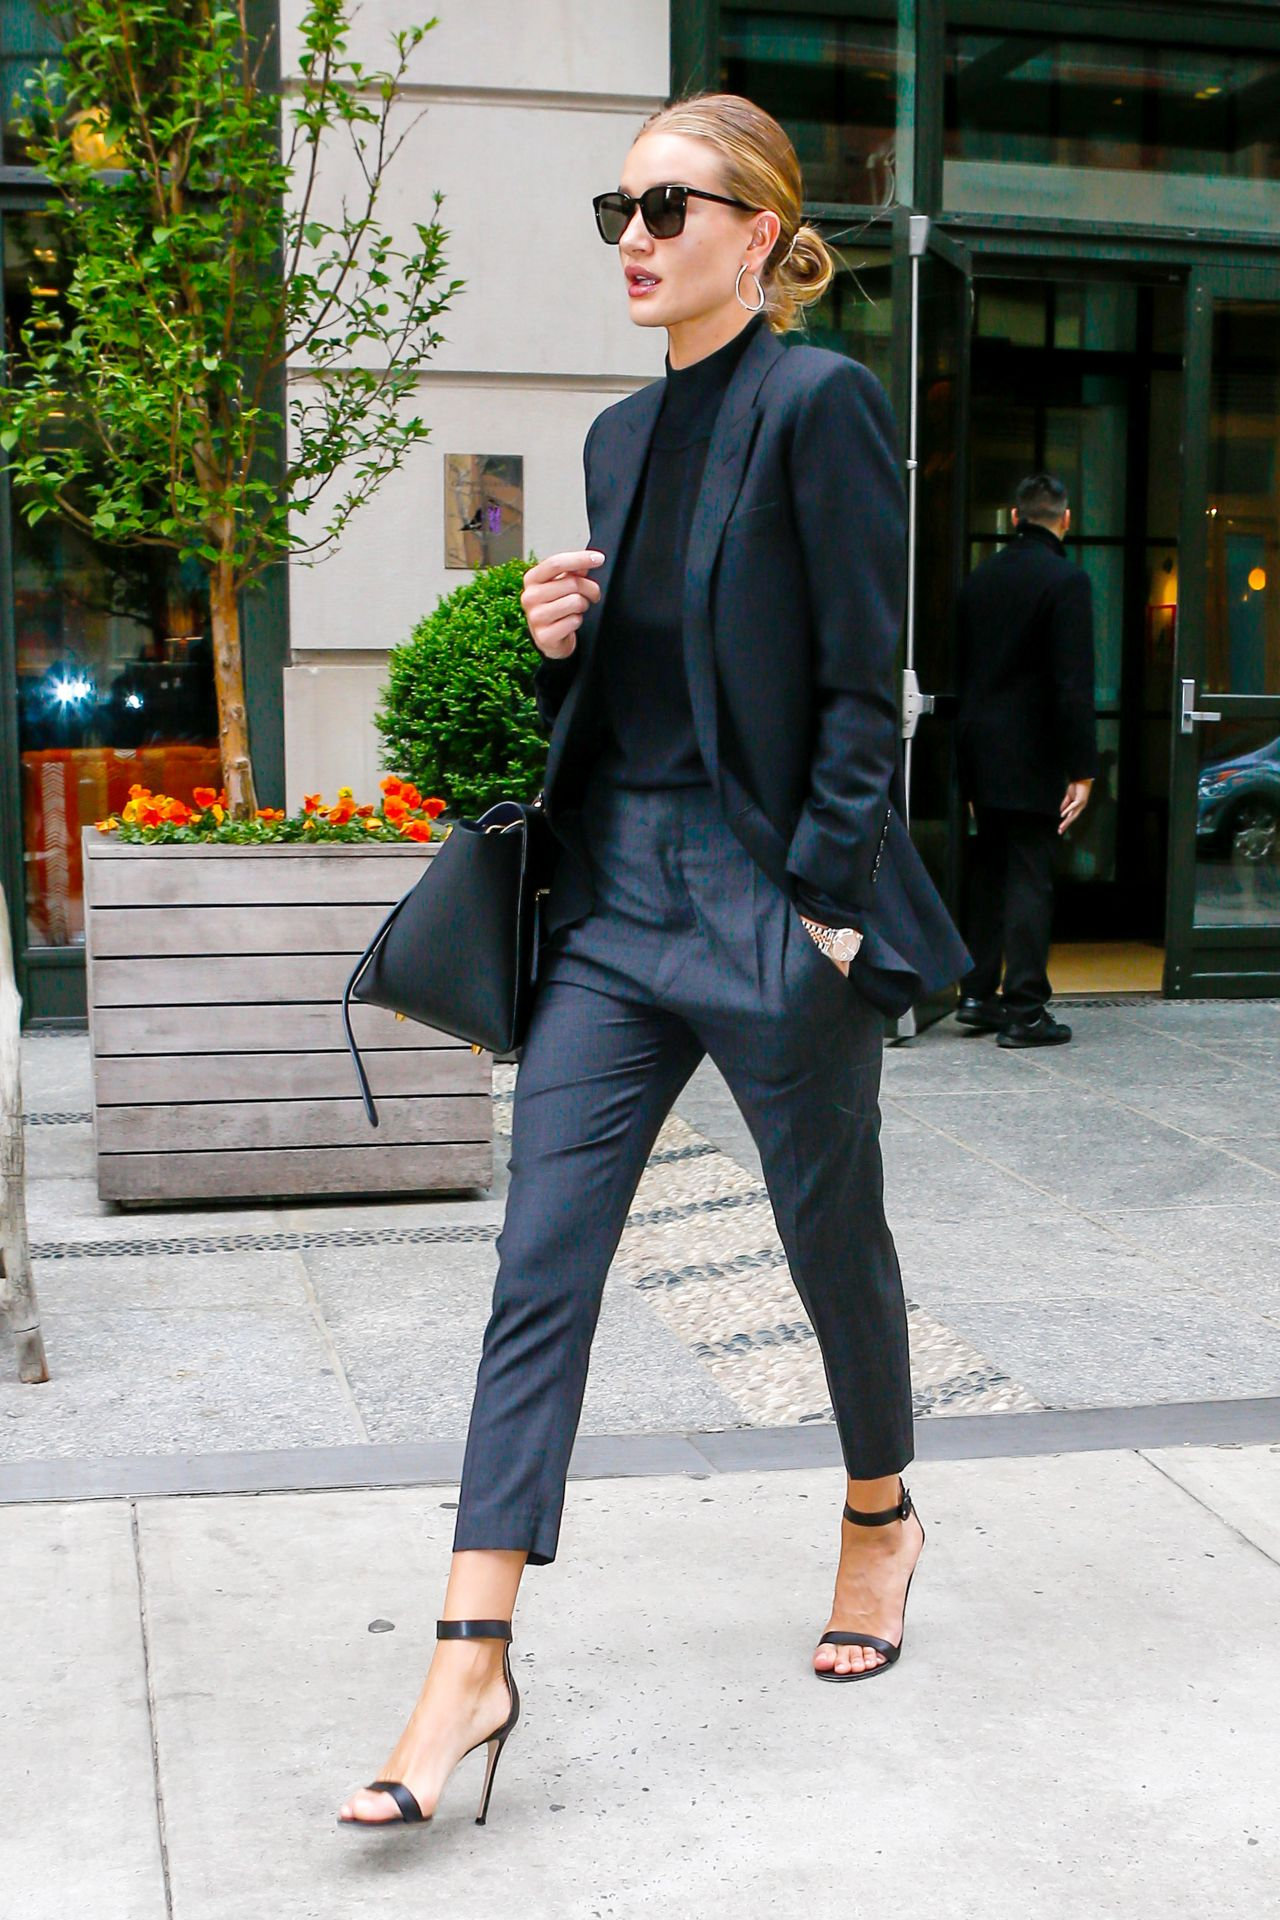 Rosie Huntington Whiteley Is Looking Stylish Leaving Her